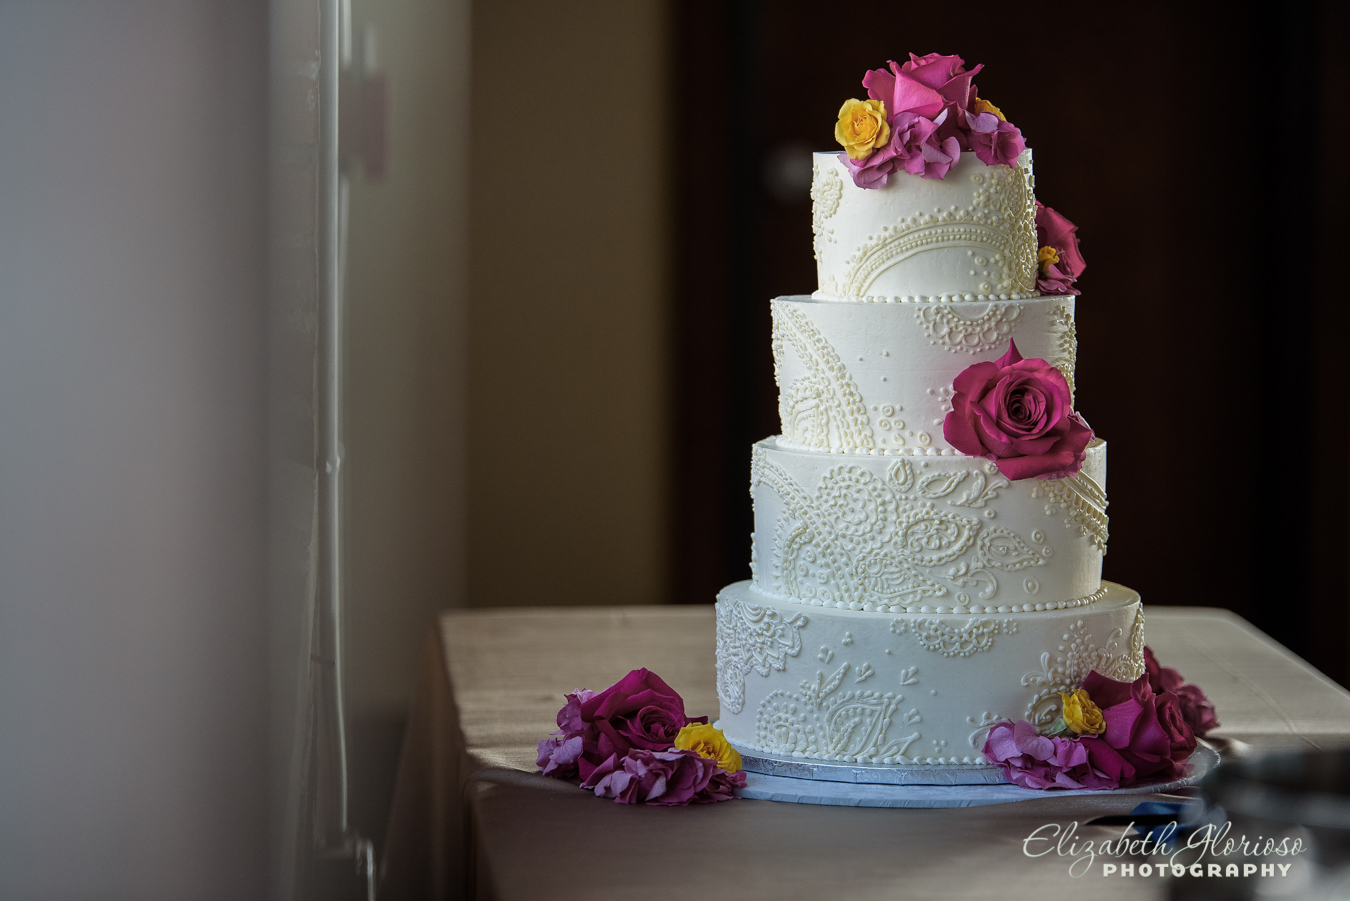 Wedding Cake at Ariel International Cleveland Ohio